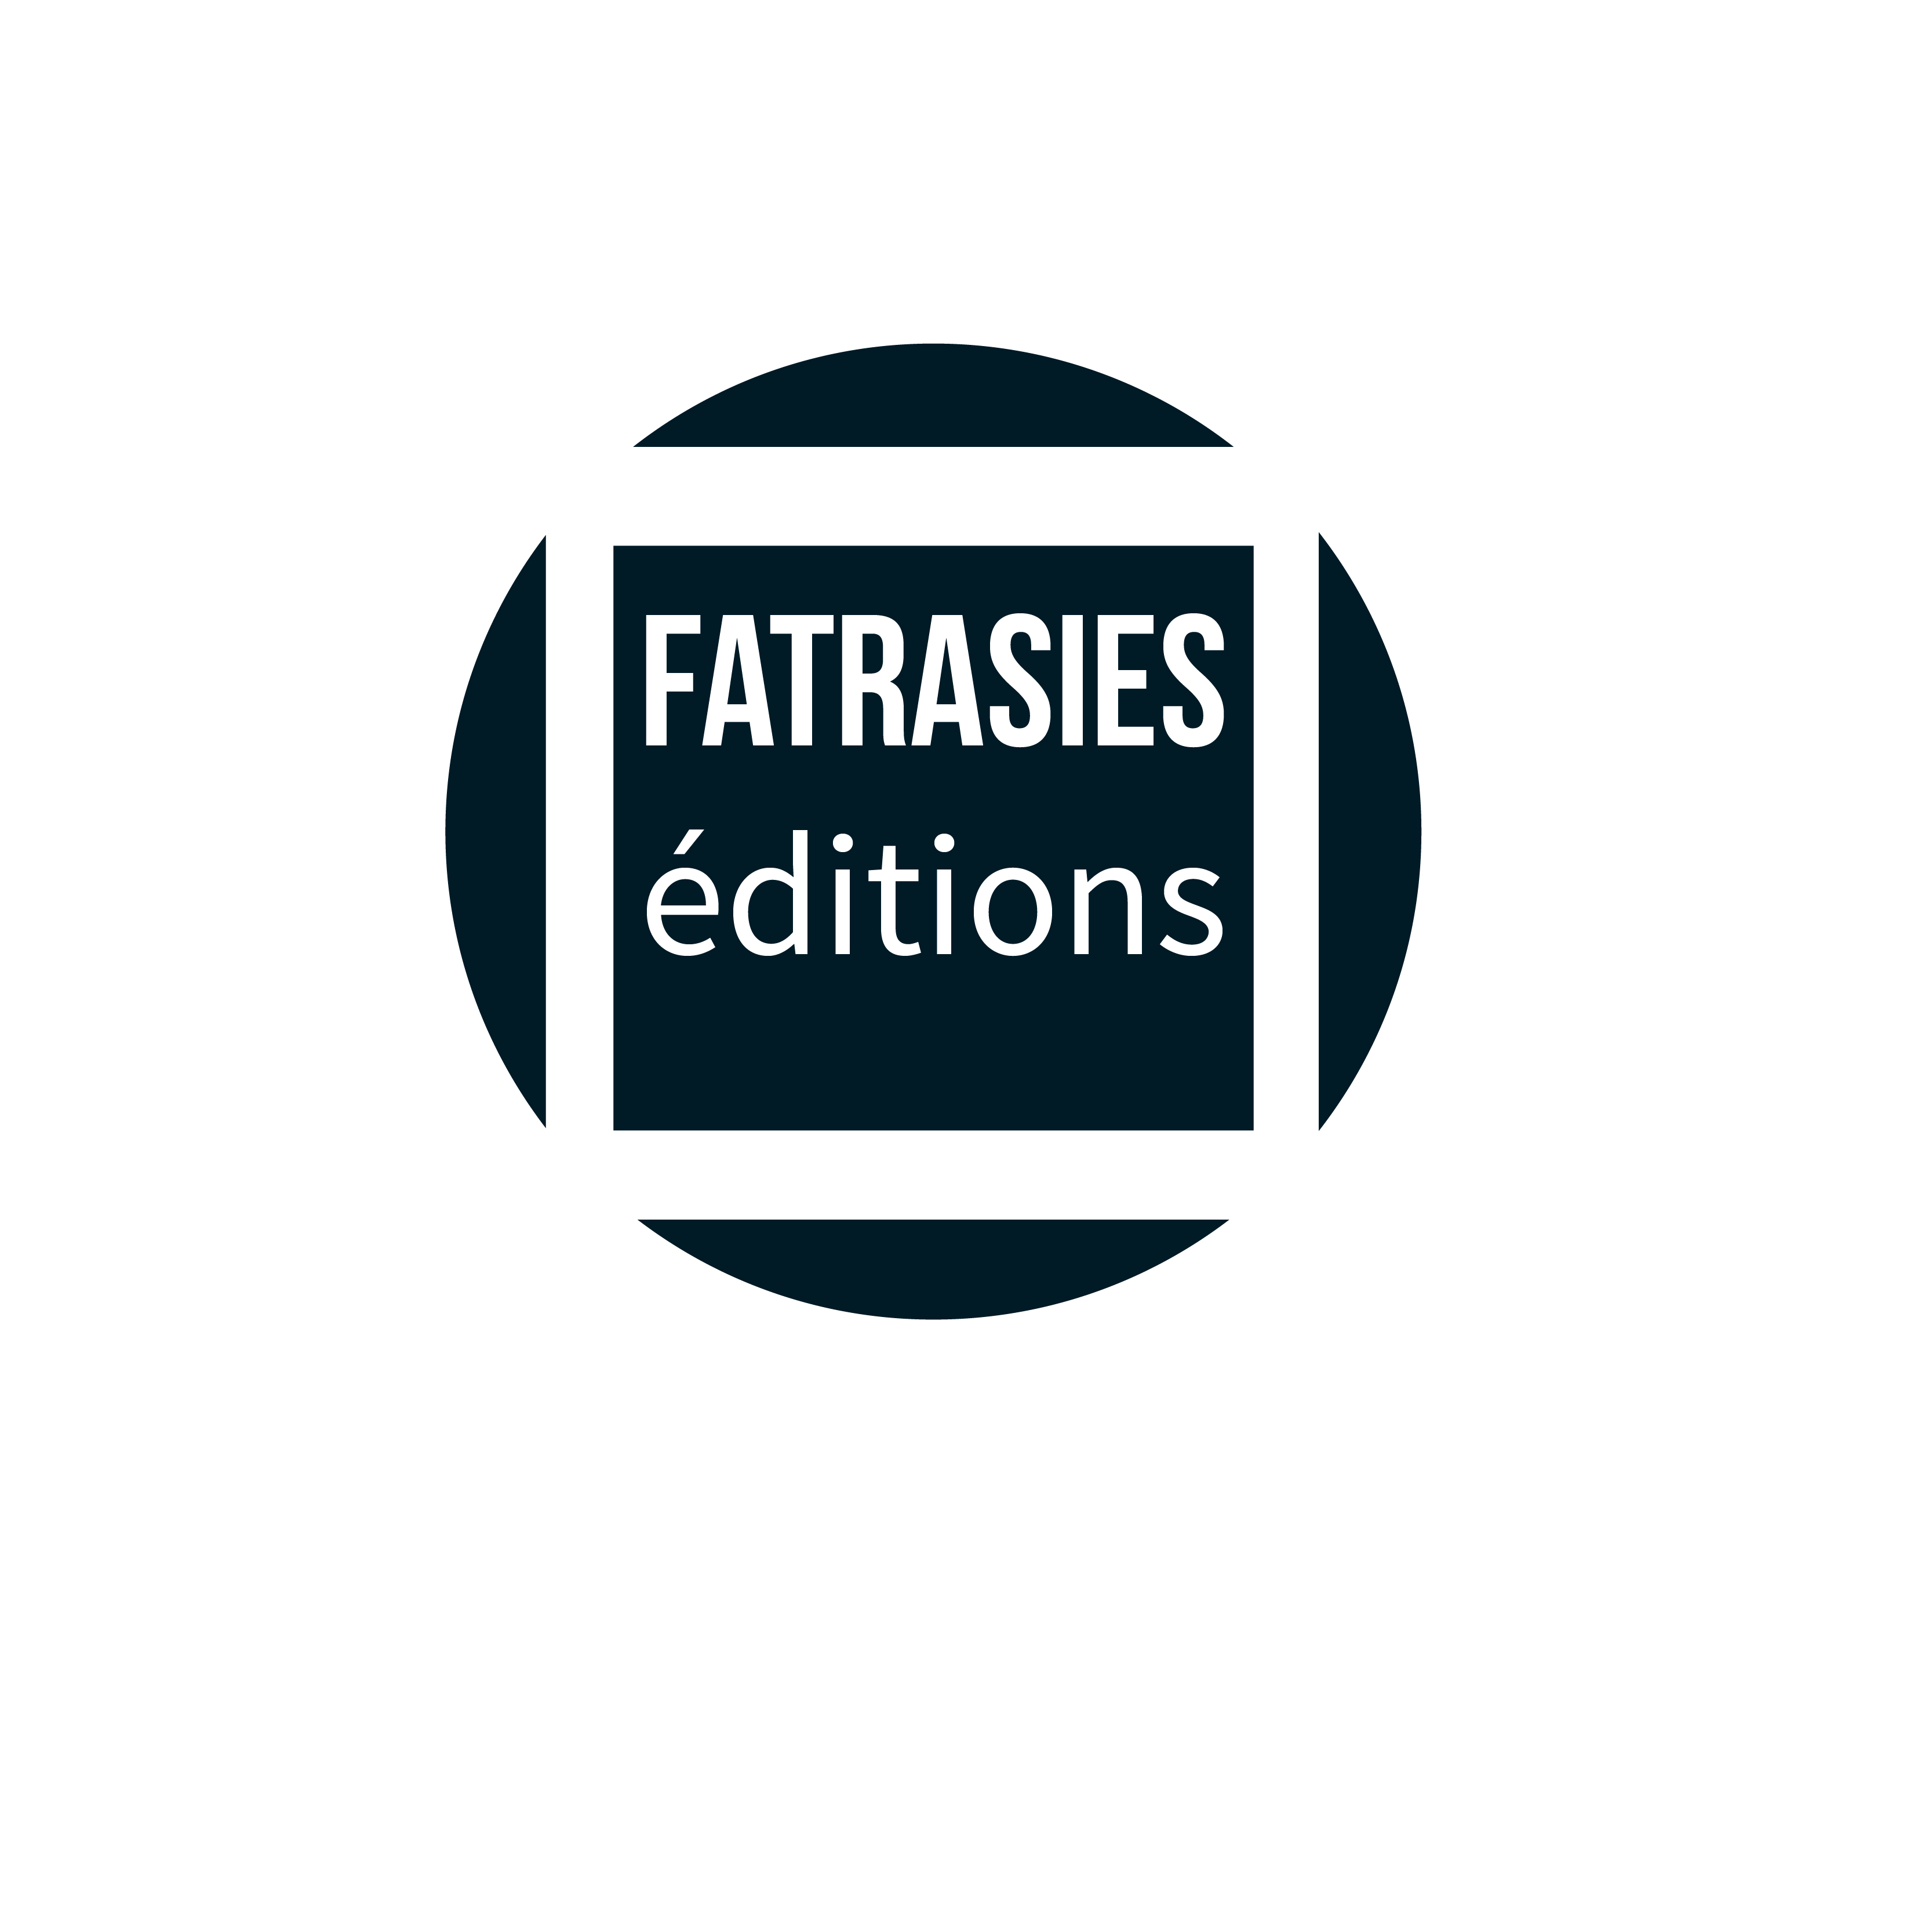 Fatrasies Editions